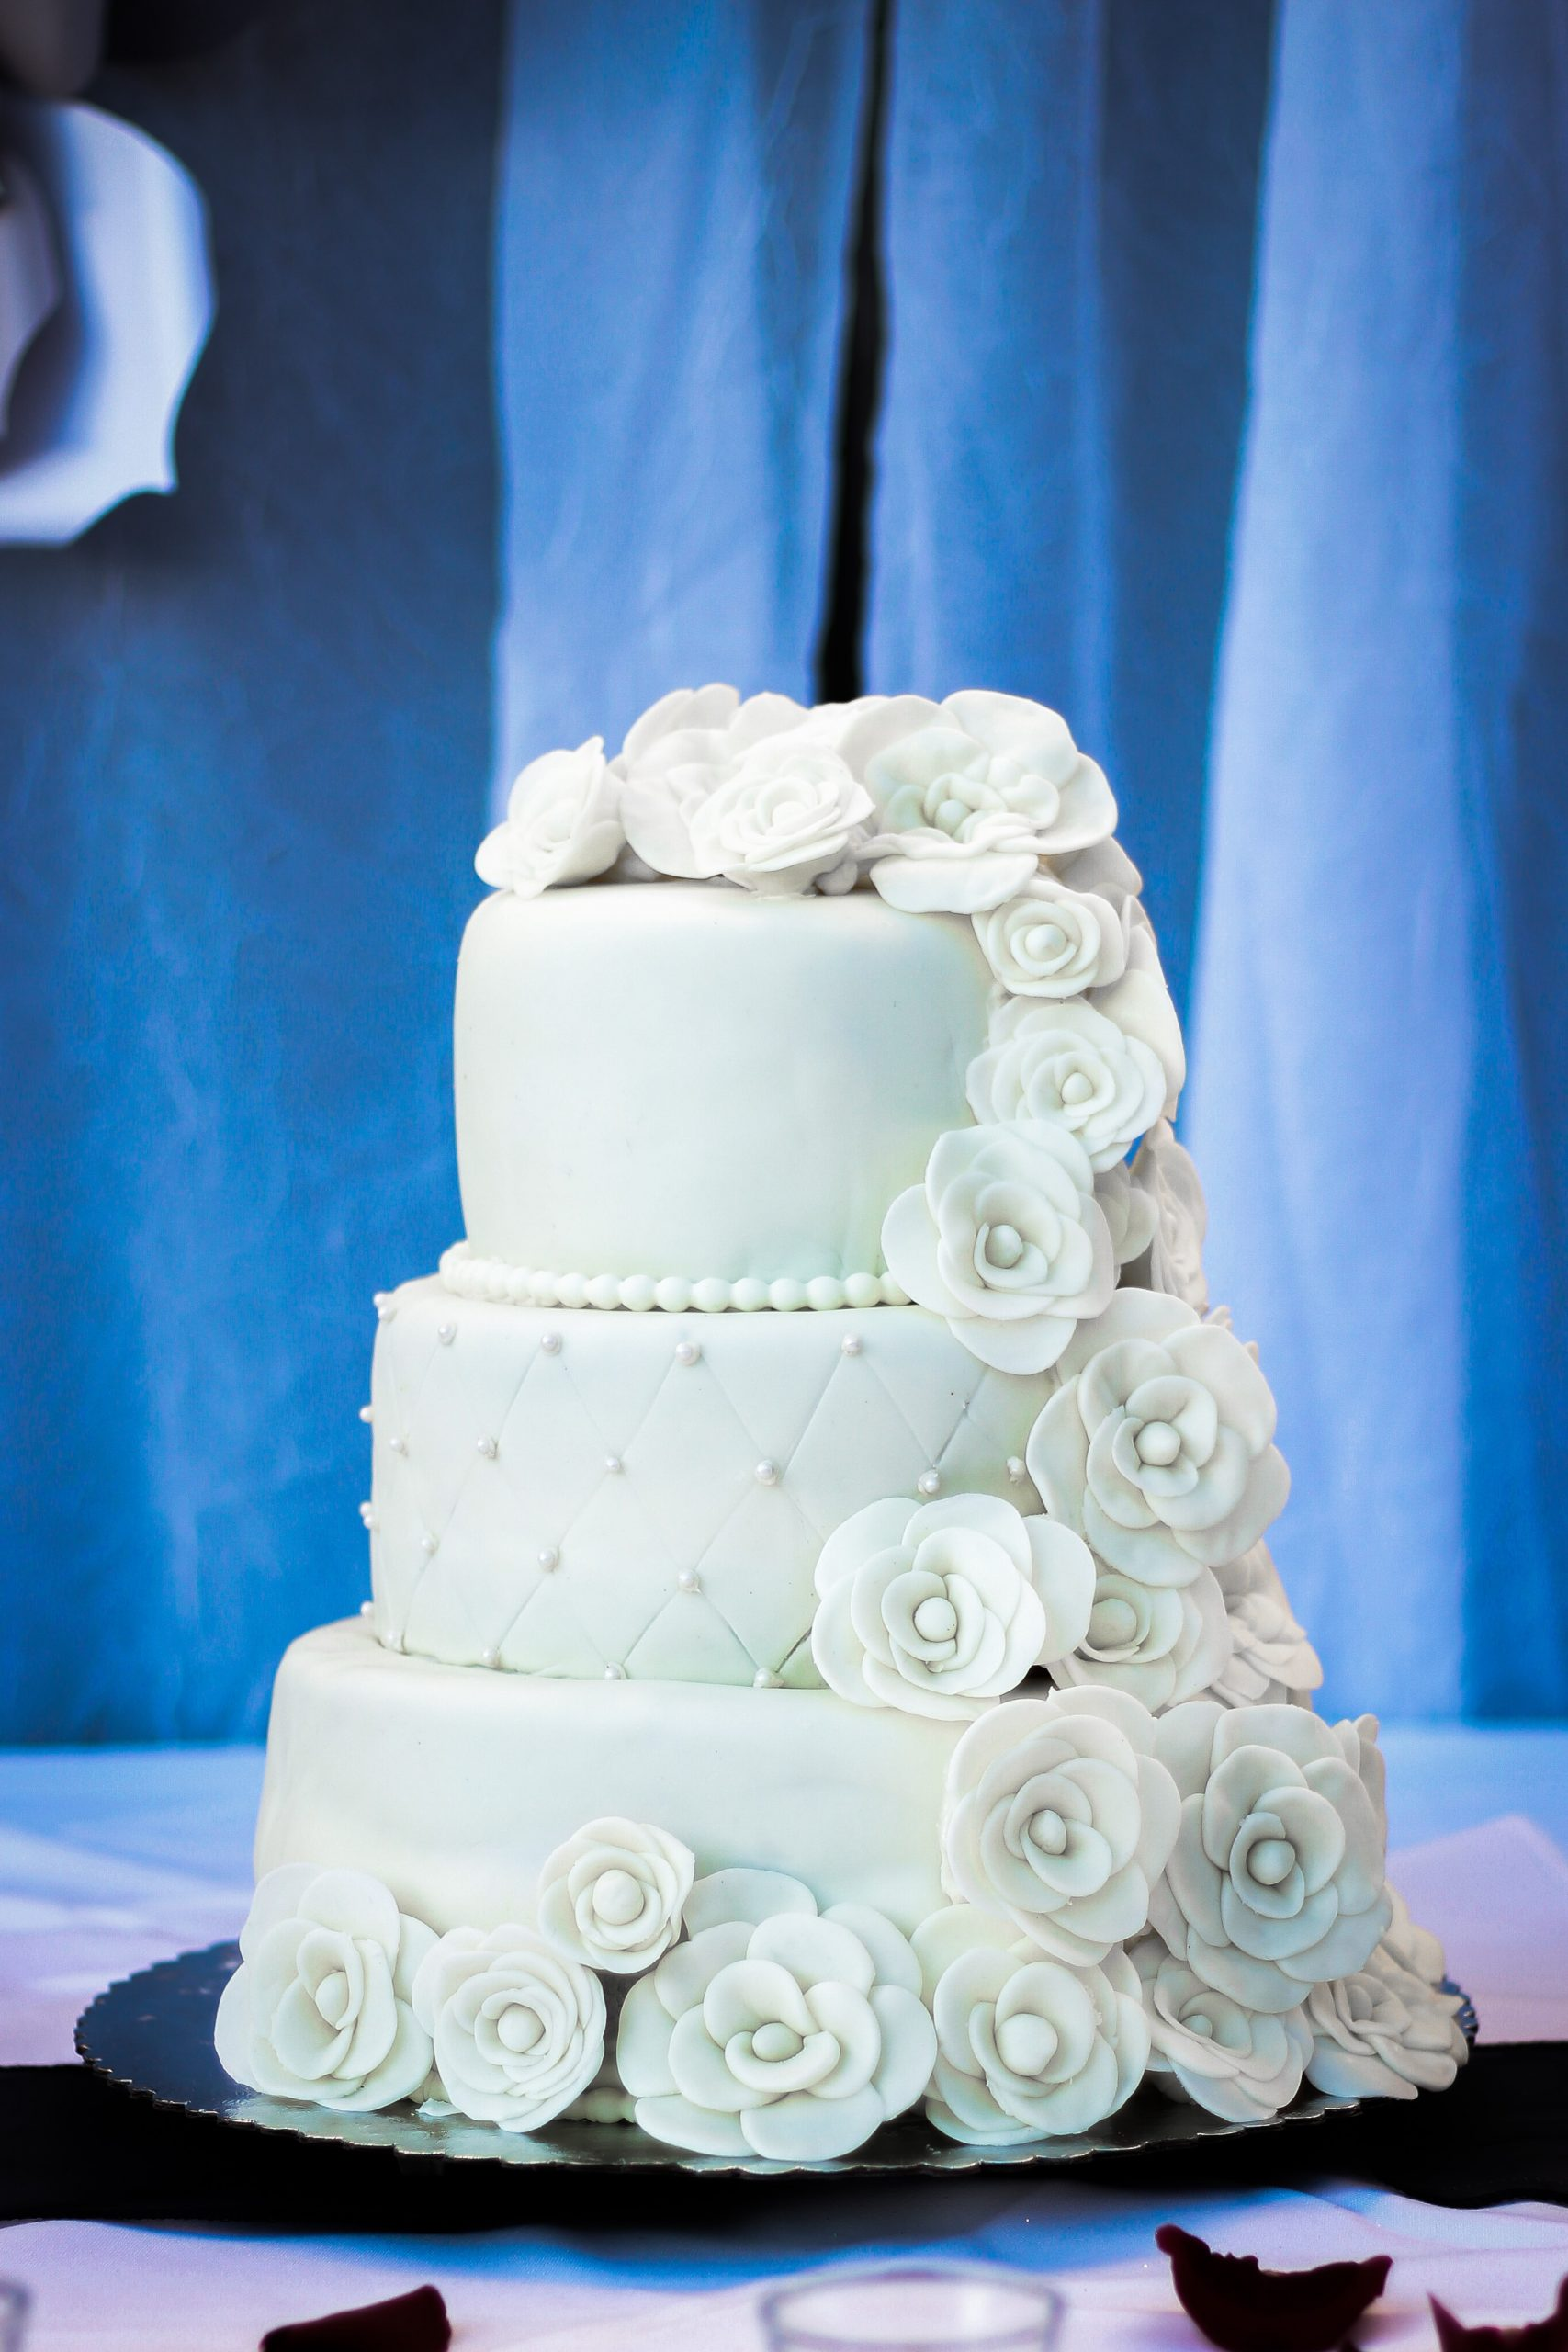 How Much Does A Wedding Cake Cost In Australia